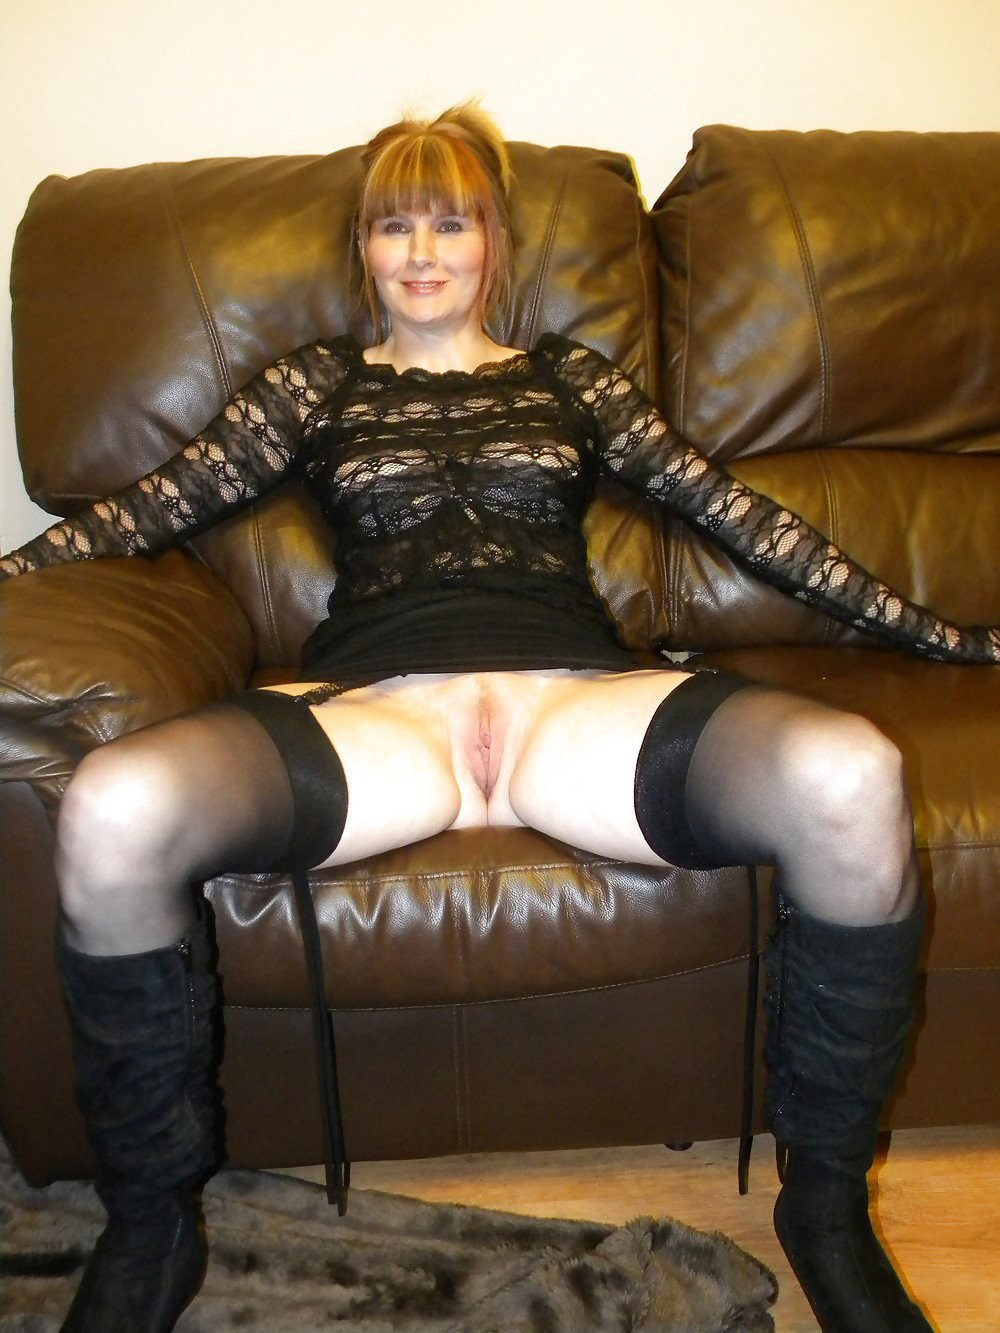 Granma in pantyhose the best